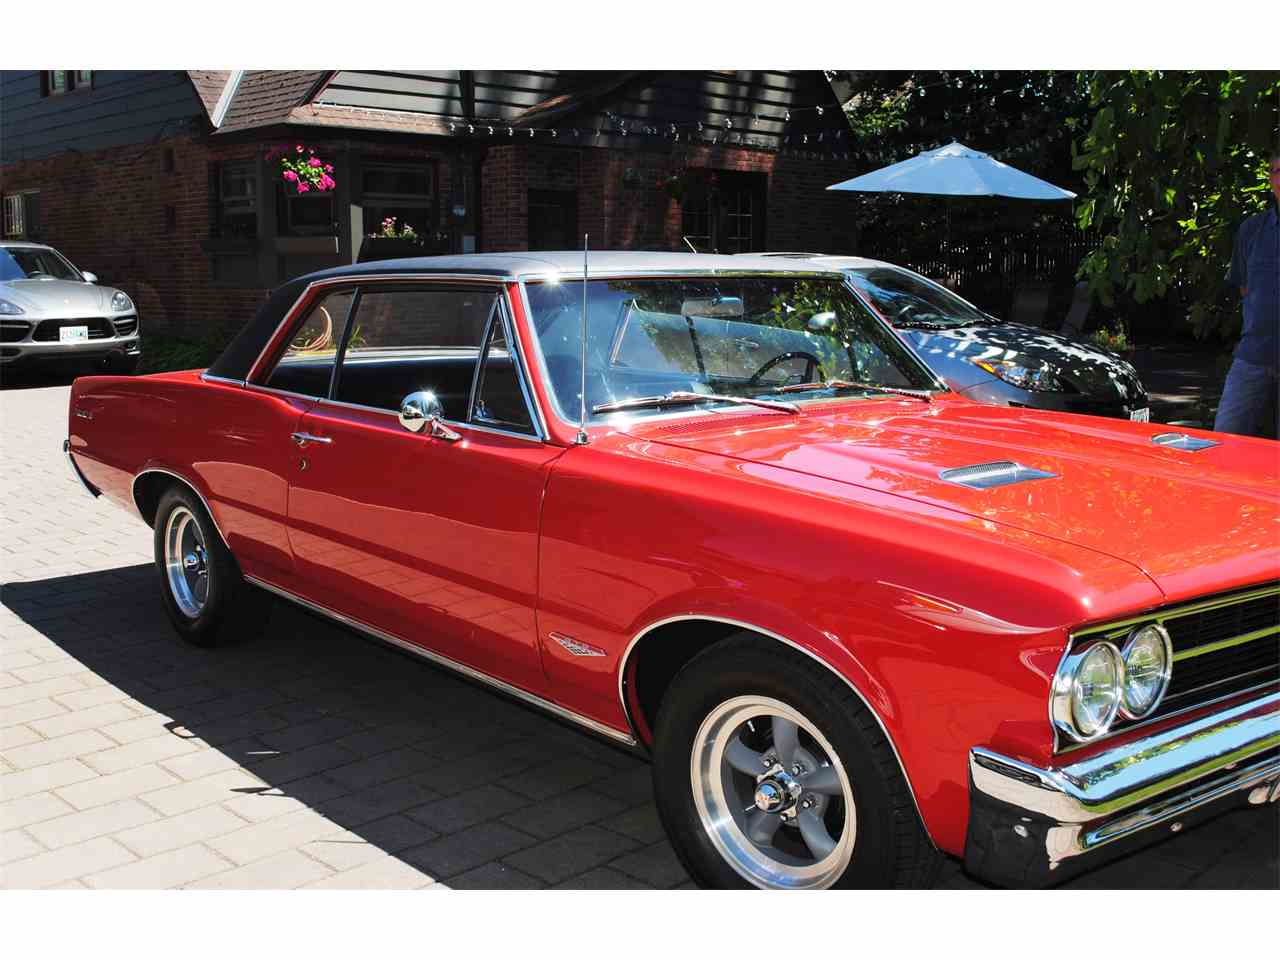 Large Picture of '64 Pontiac GTO - $45,000.00 Offered by a Private Seller - LE7M